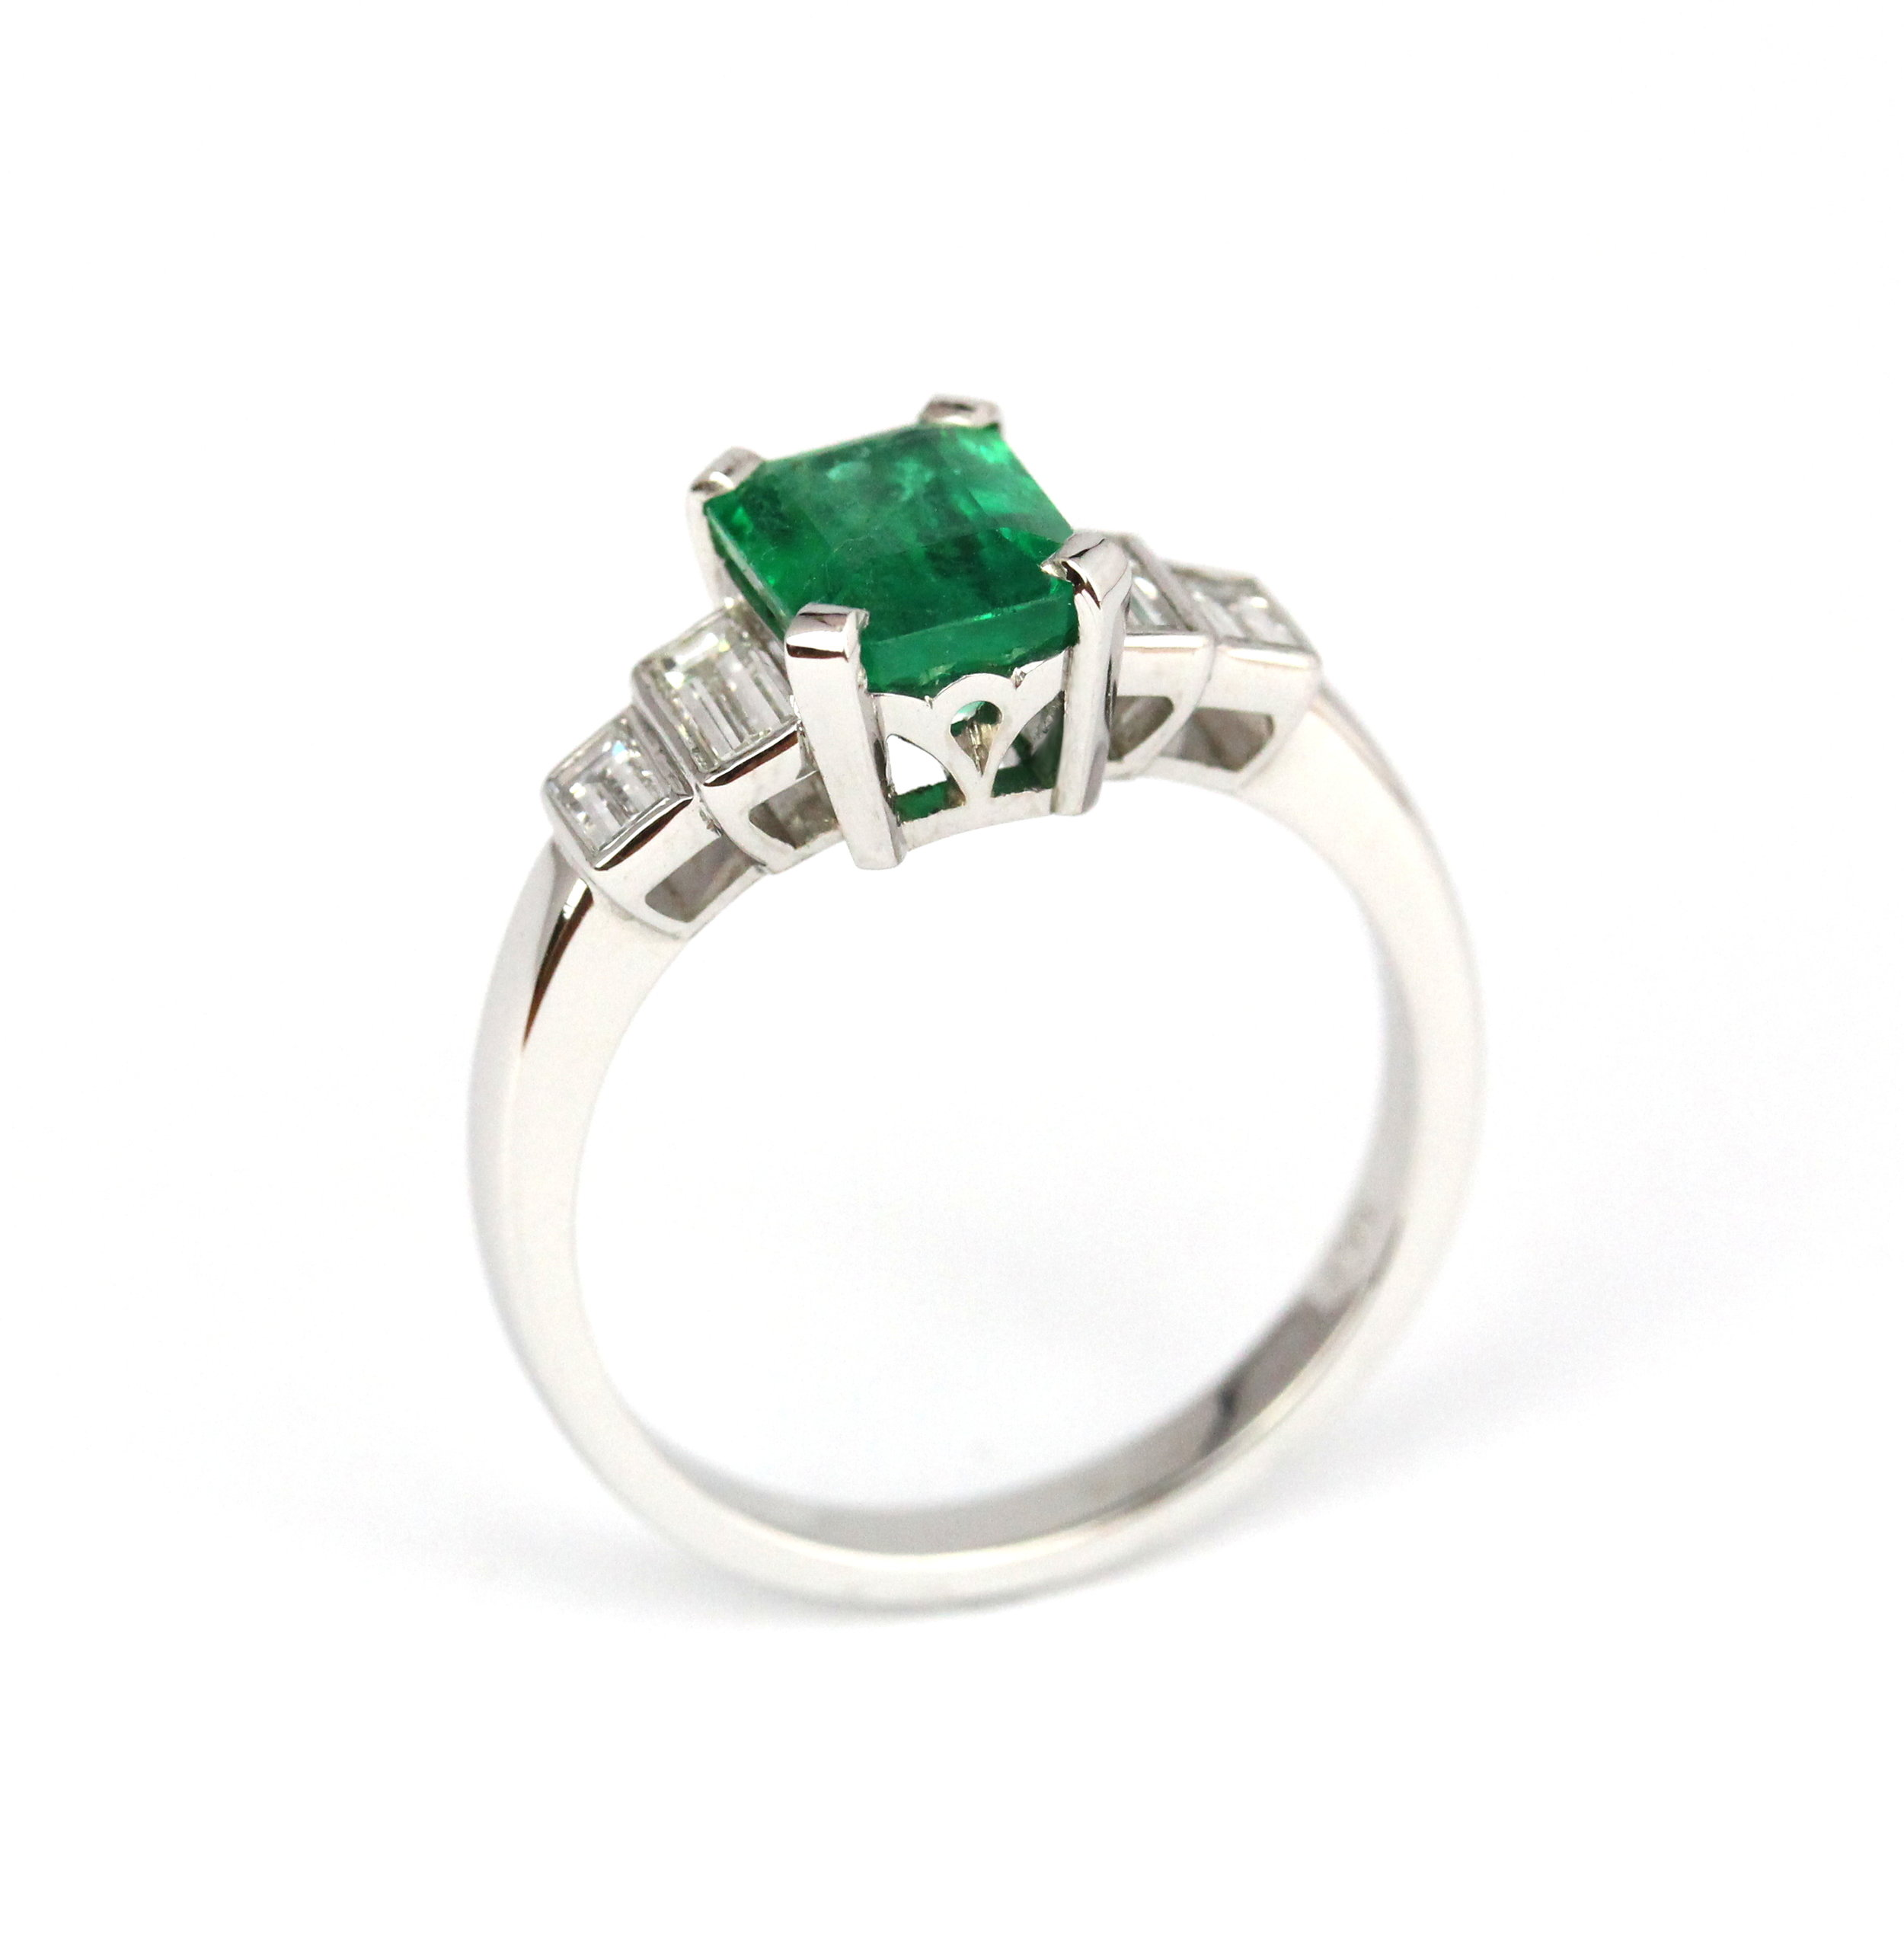 Emerald with bezel set baguette diamonds in white gold ring.